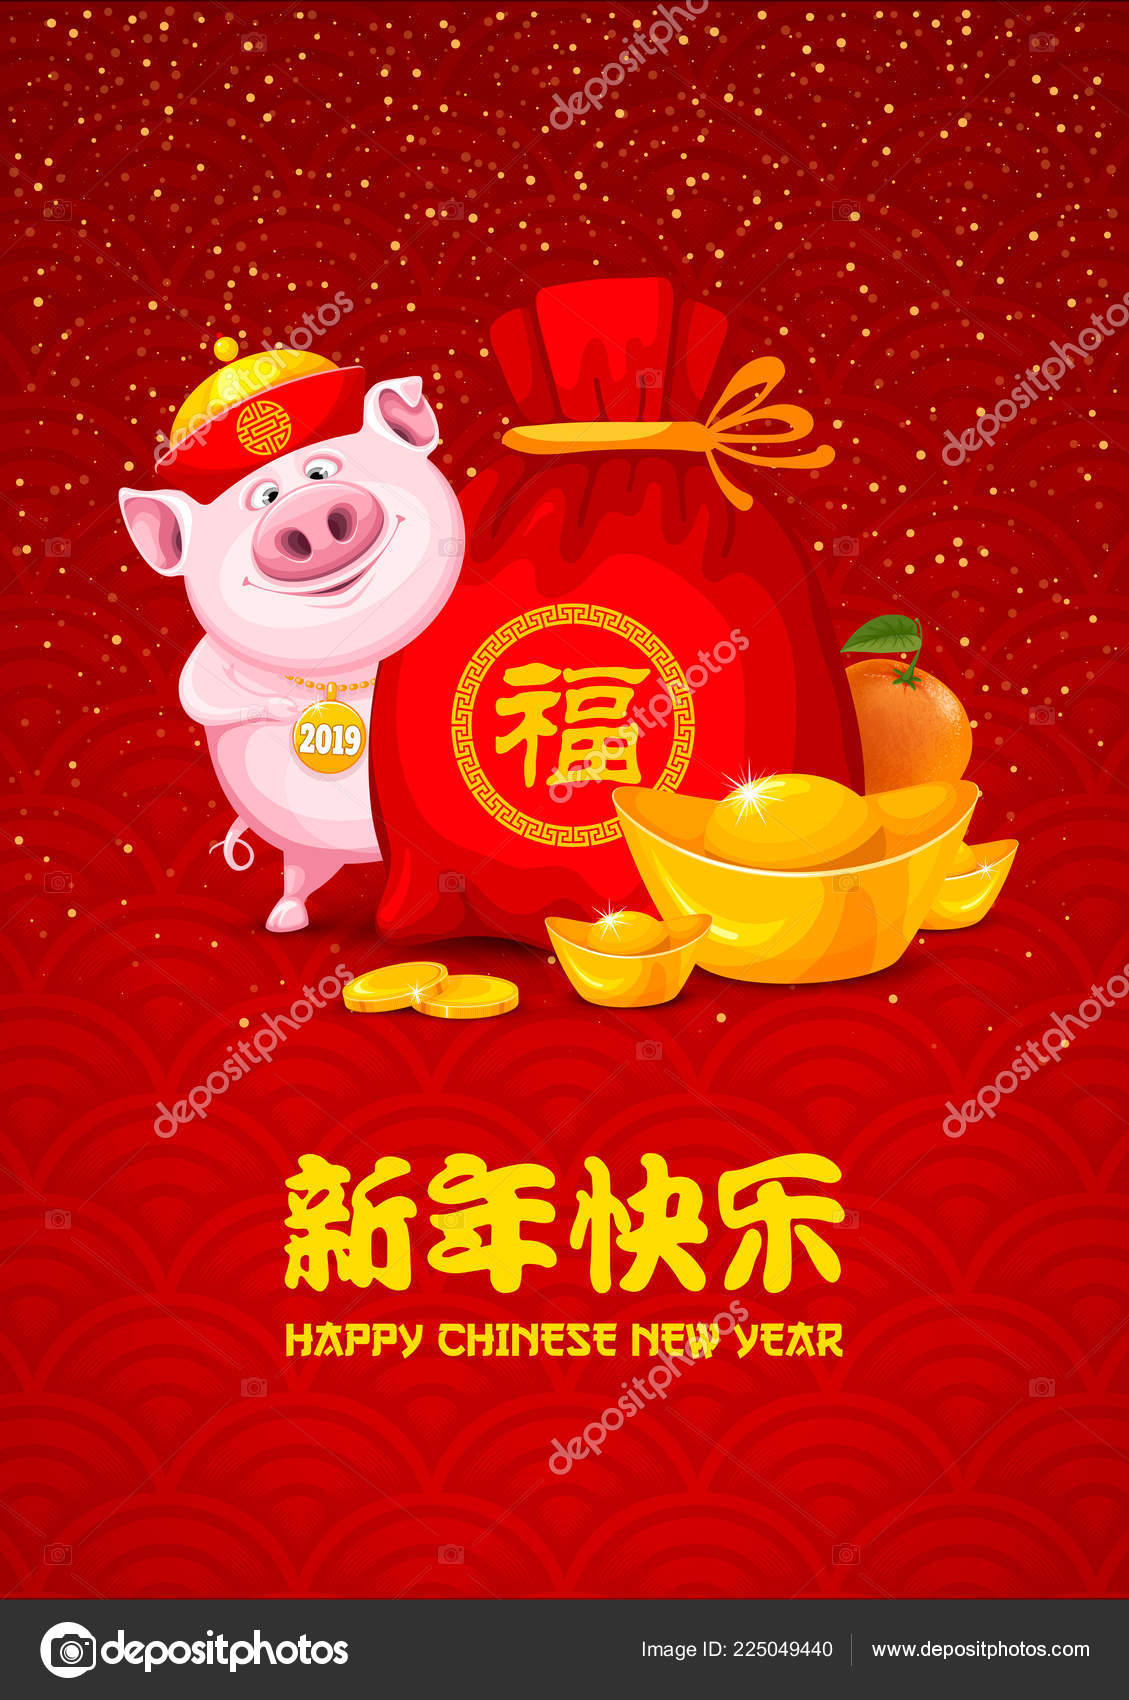 chinese new year greeting design template pig symbol new 2019 stock vector